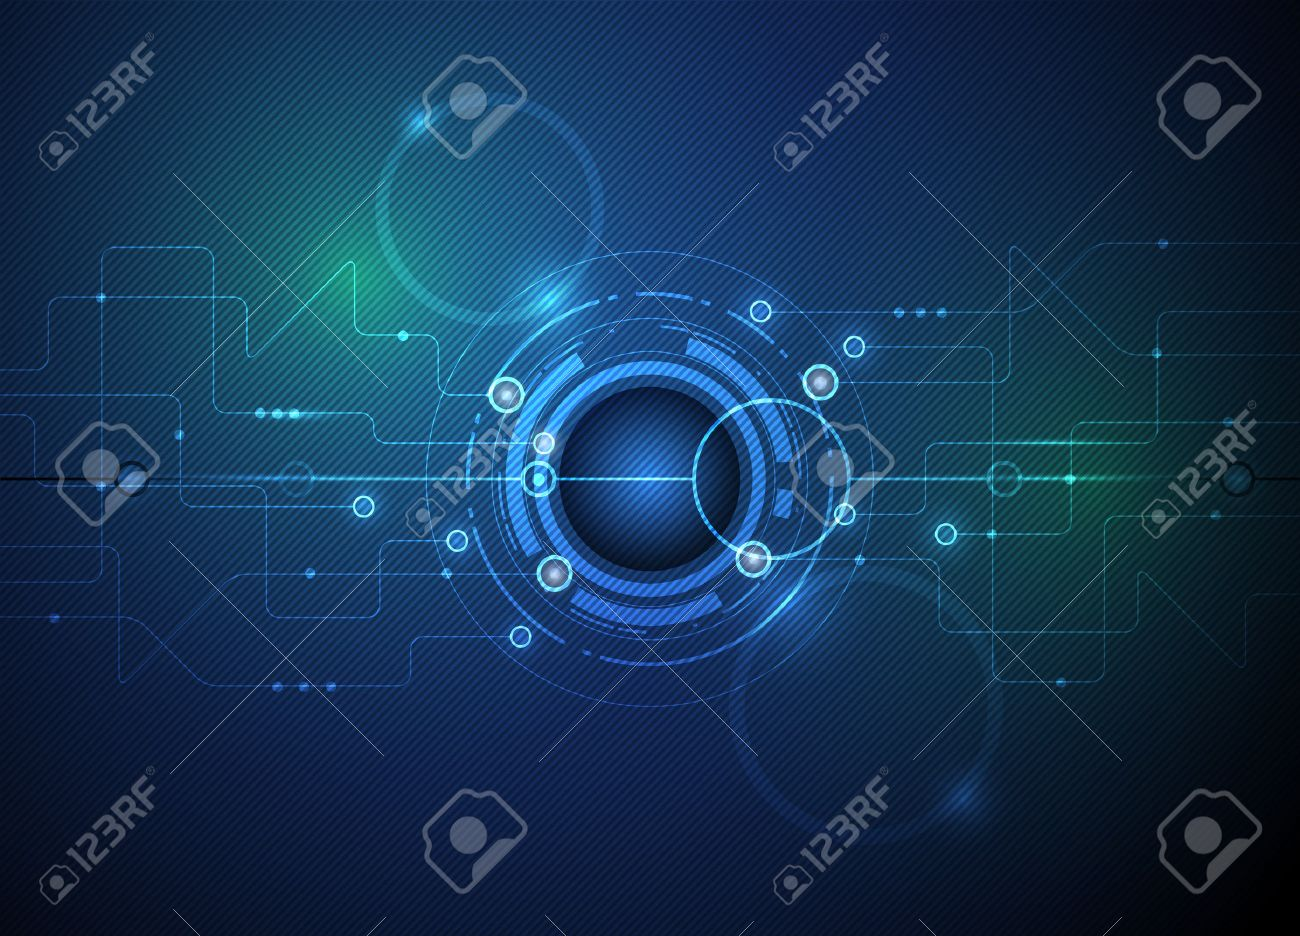 Vector illustration Abstract futuristic eyeball on circuit board, high computer technology green and blue color background Stock Vector - 42341676